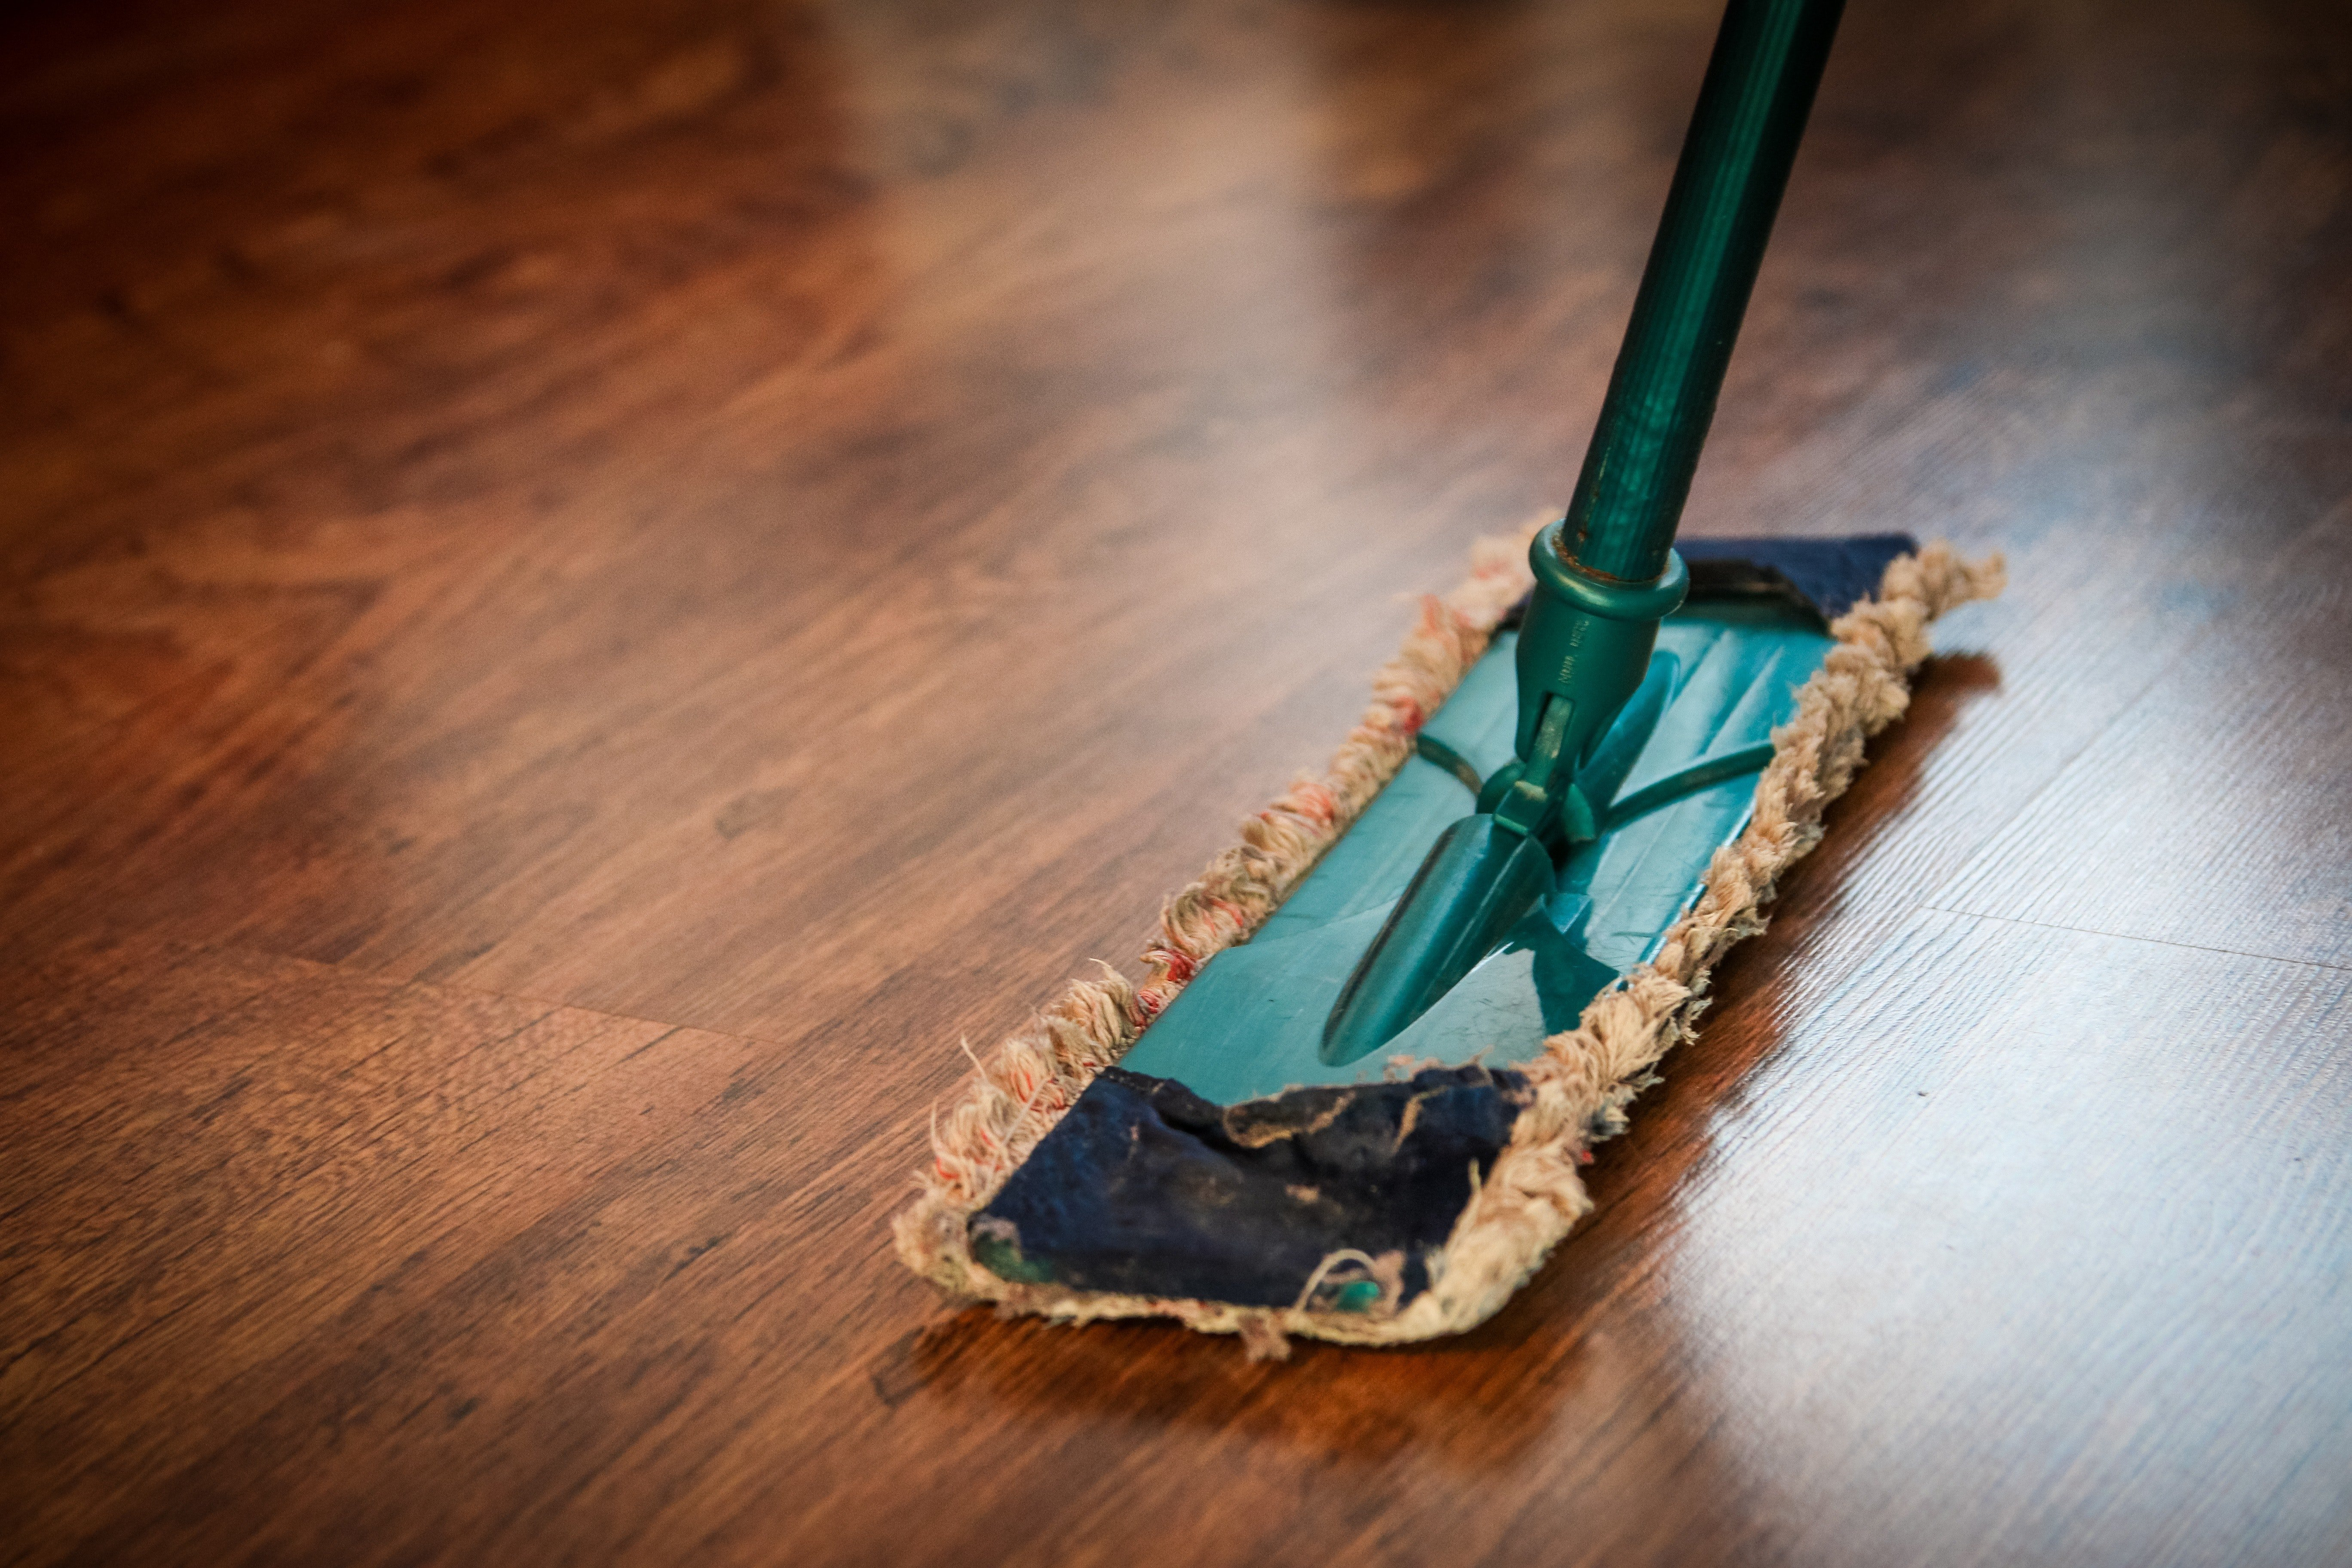 Mopping the floor. | Source: Pexels